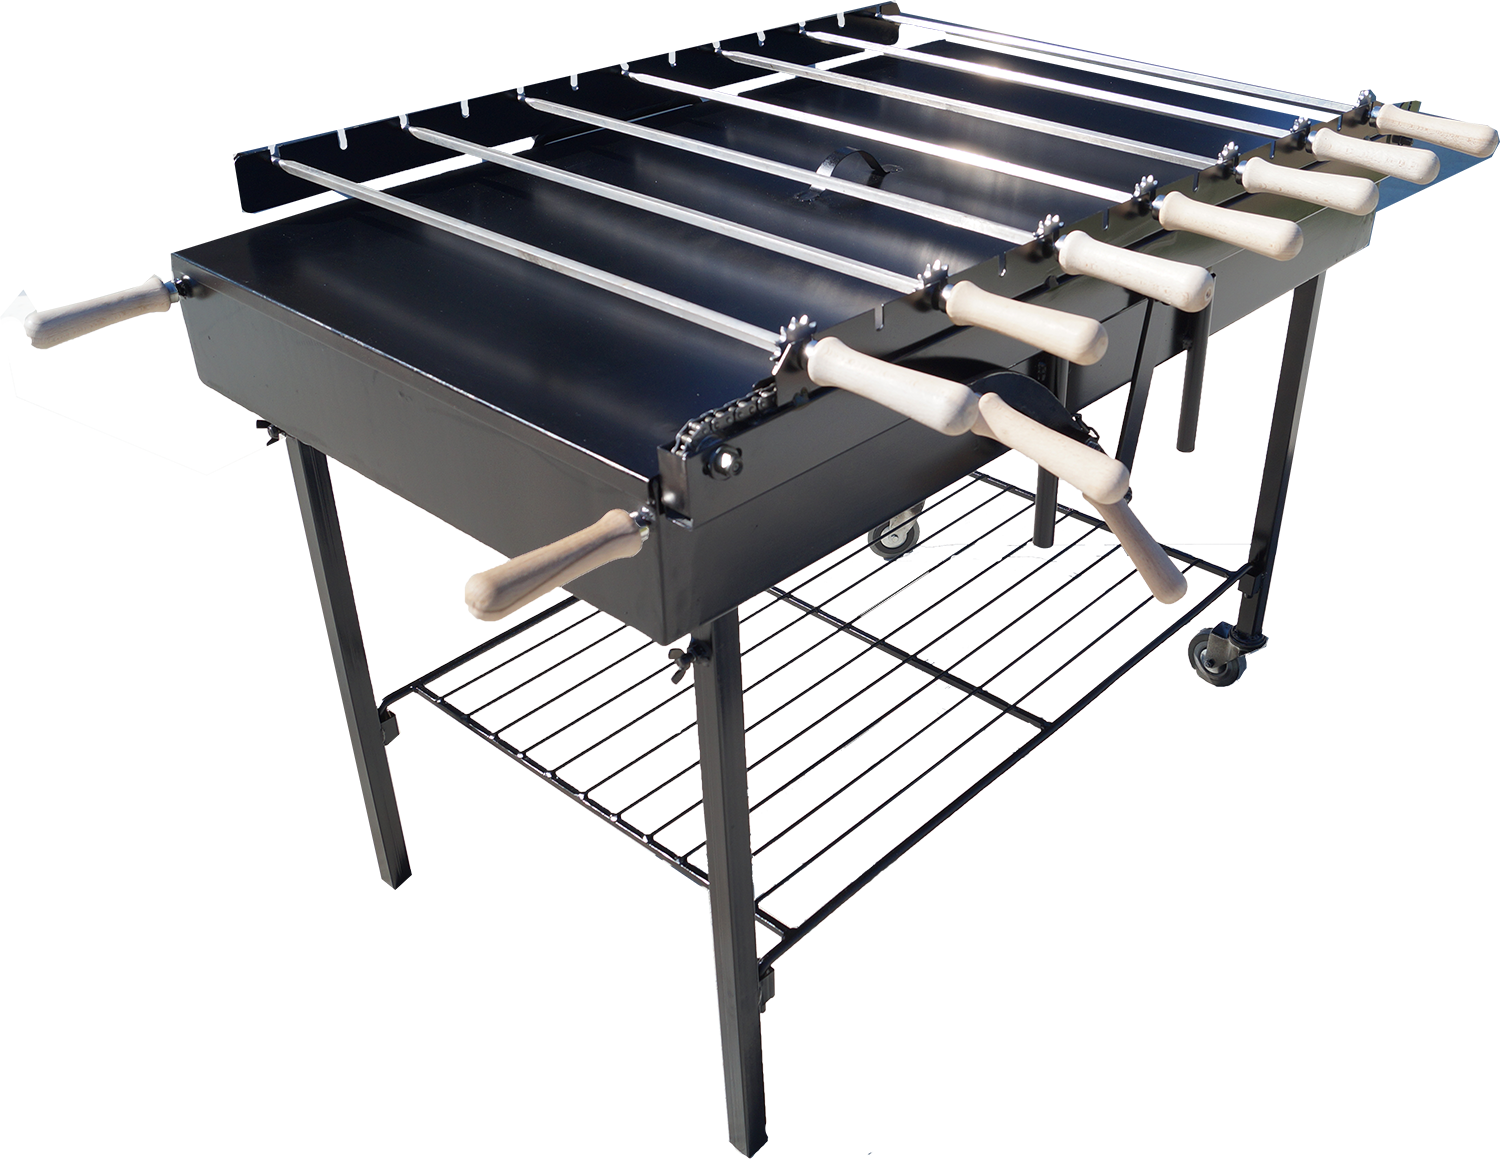 Restaurant Commercial Kitchen Stainless Steel Gas Griddle Commercial Stainless Steel Table Top All Flat Gas Griddles.